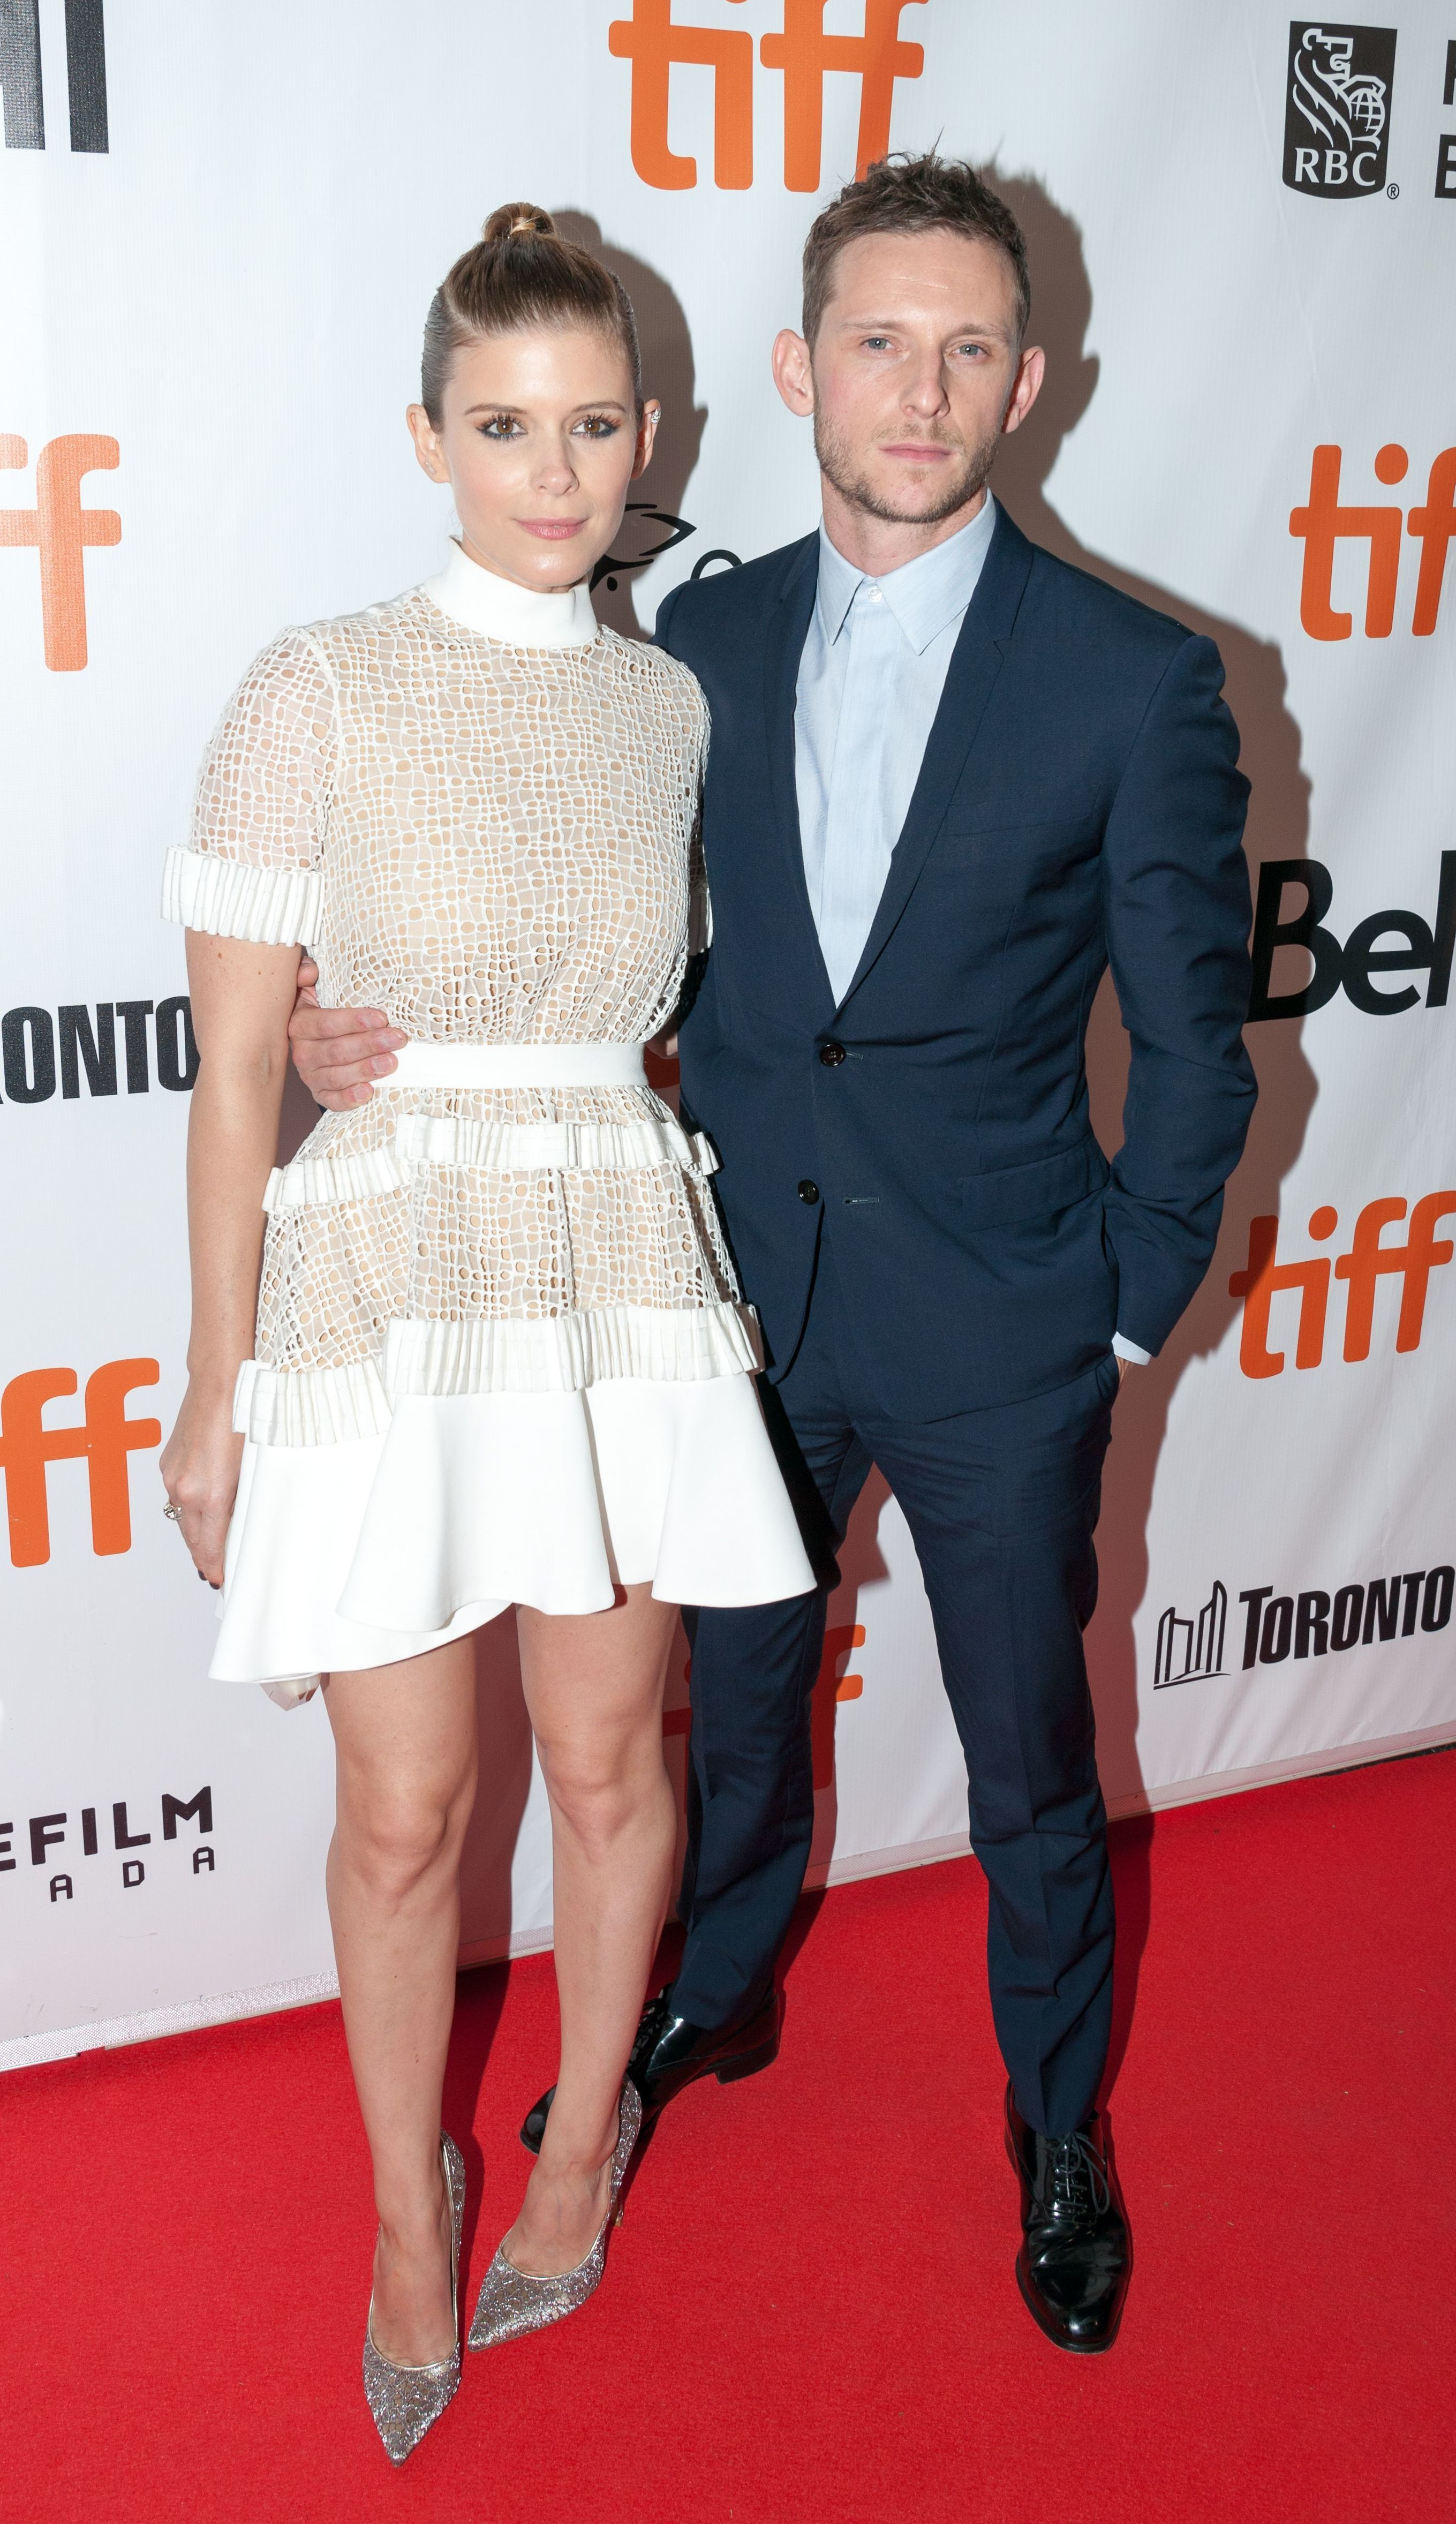 """Kate Mara and Jamie Bell attend the """"Film Stars Don't Die in Liverpool"""" film premiere at the Toronto International Film Festival on Sept. 12, 2017."""